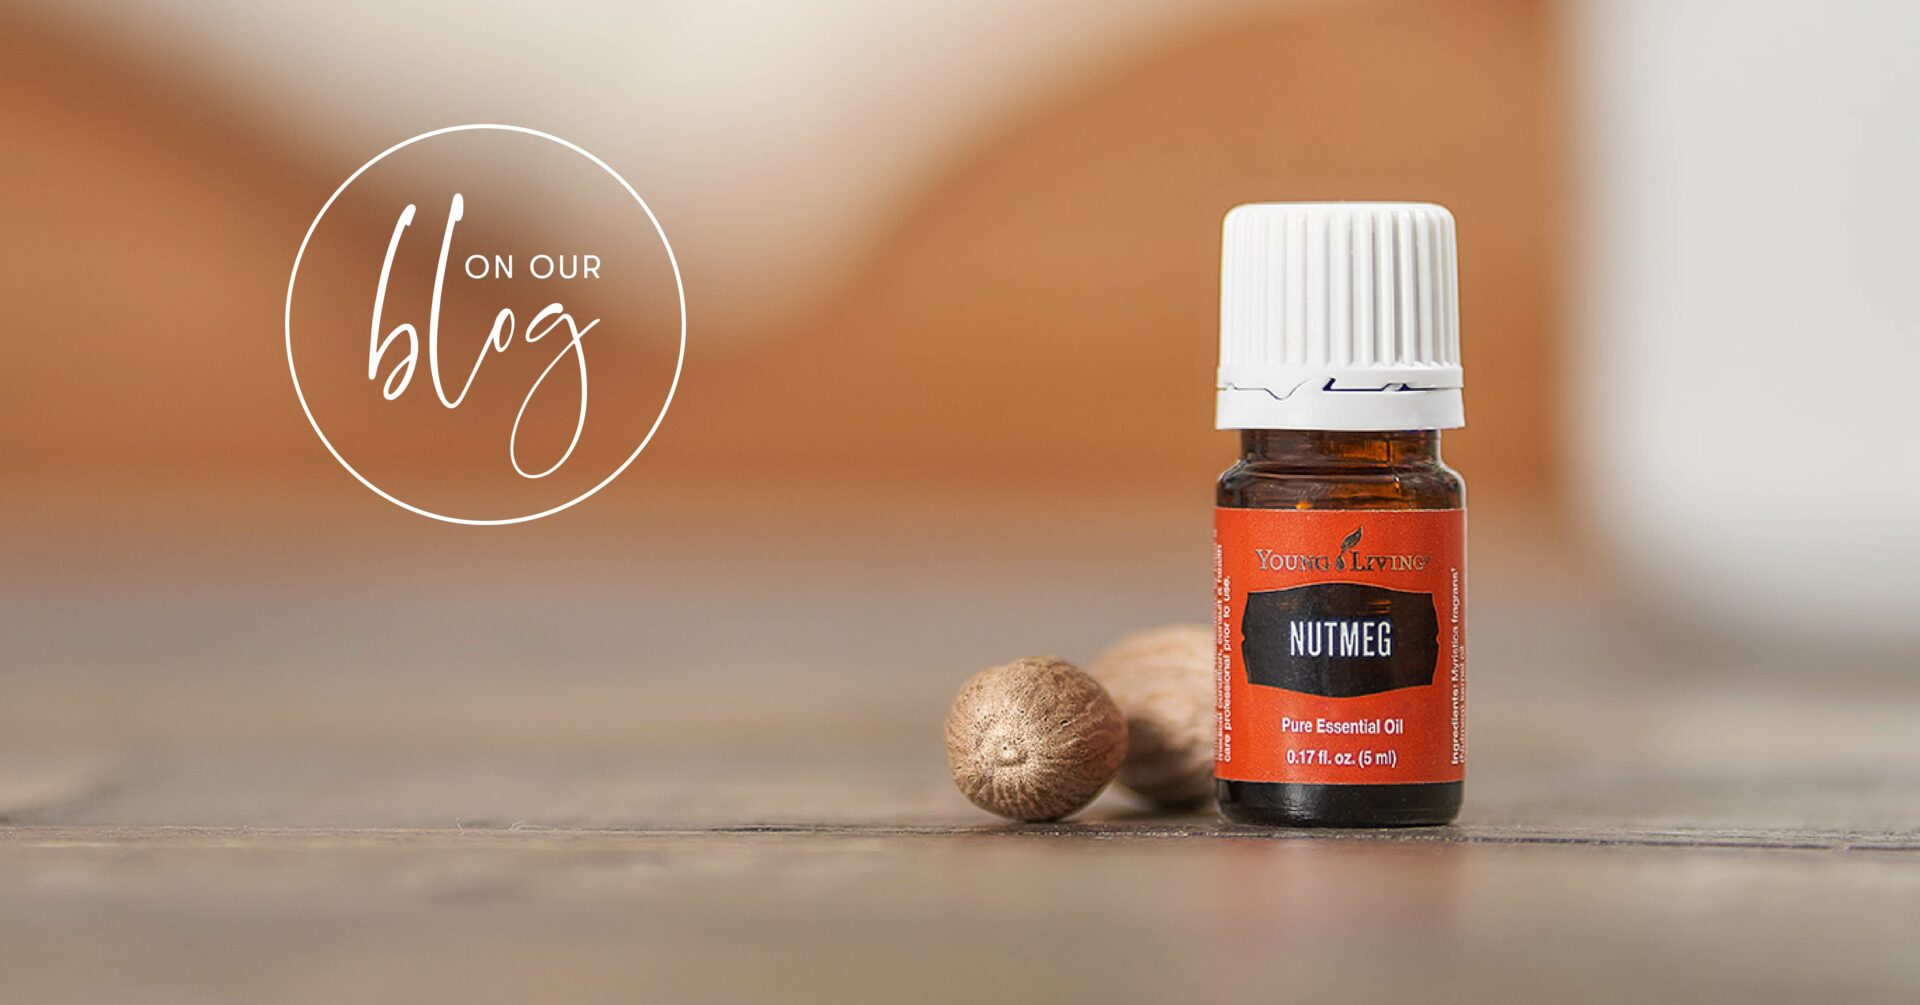 Nutmeg essential oil: Warm, spicy, and uplifting